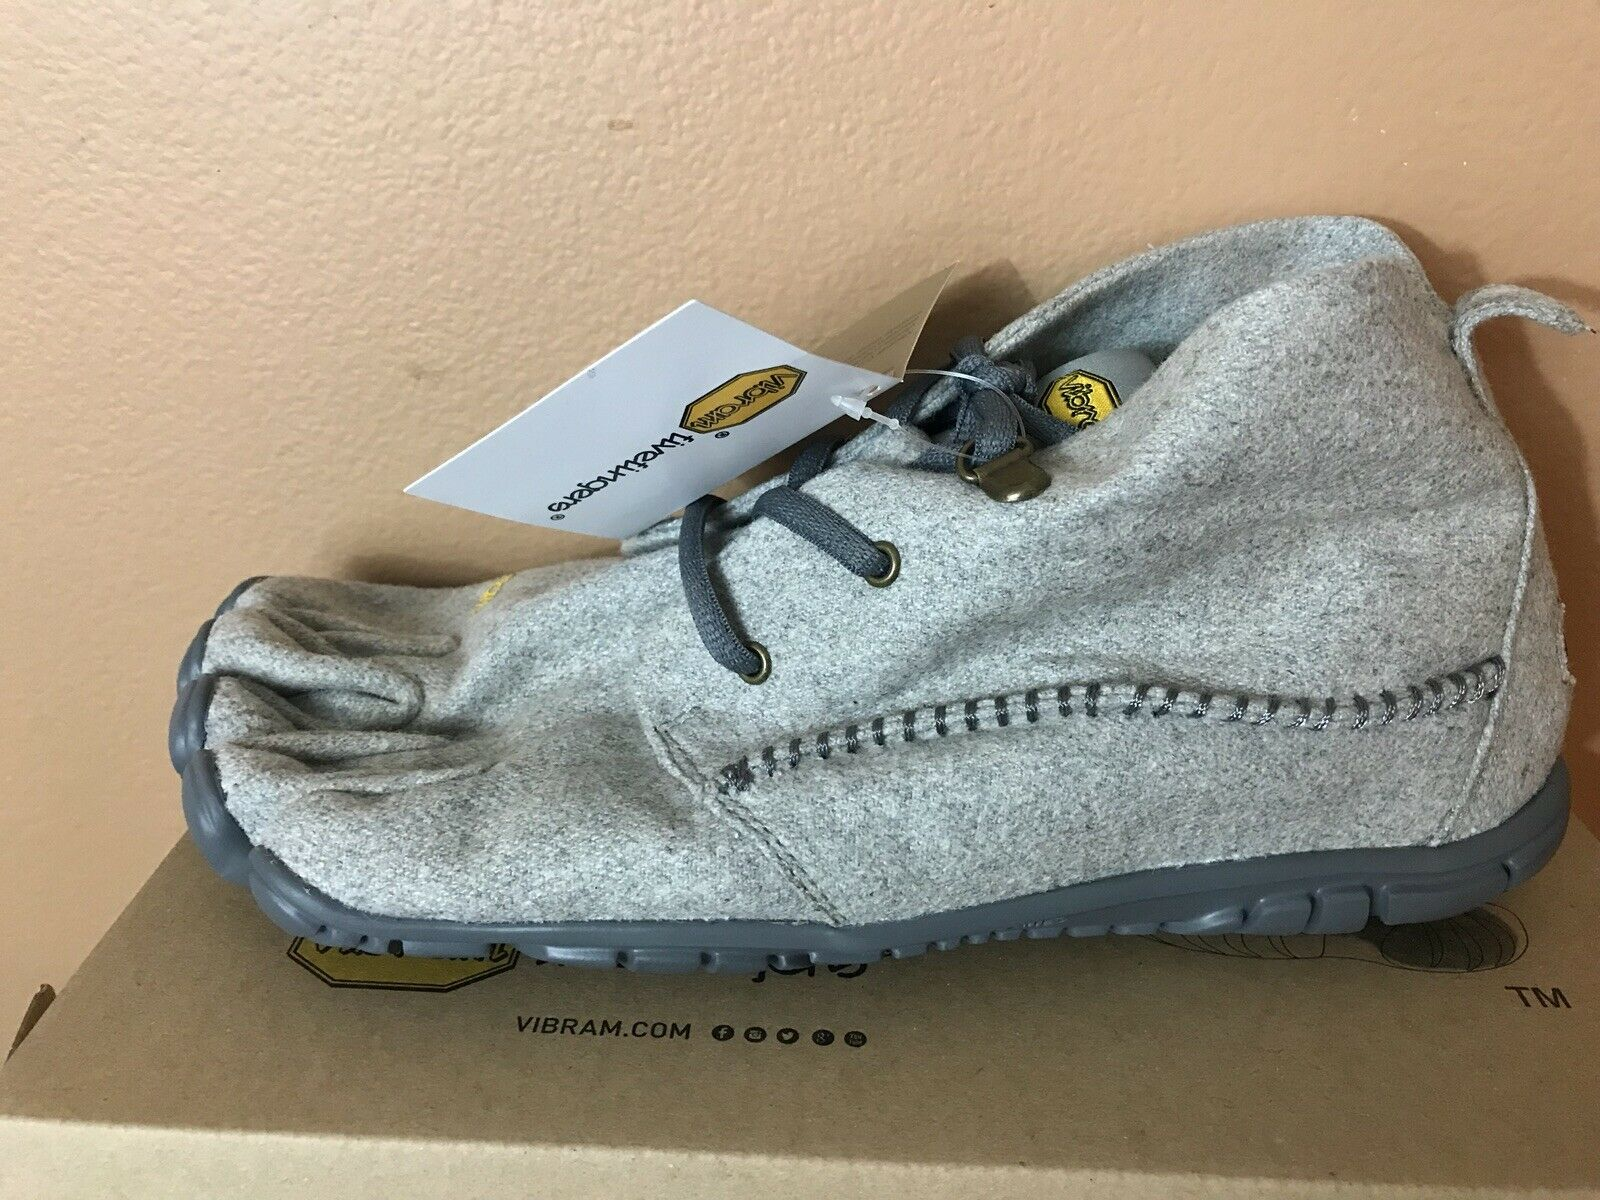 Vibram Fivefingers CVT Wool Shoes Grey Gray Size 9.5 10 EU 43 NEW IN BOX